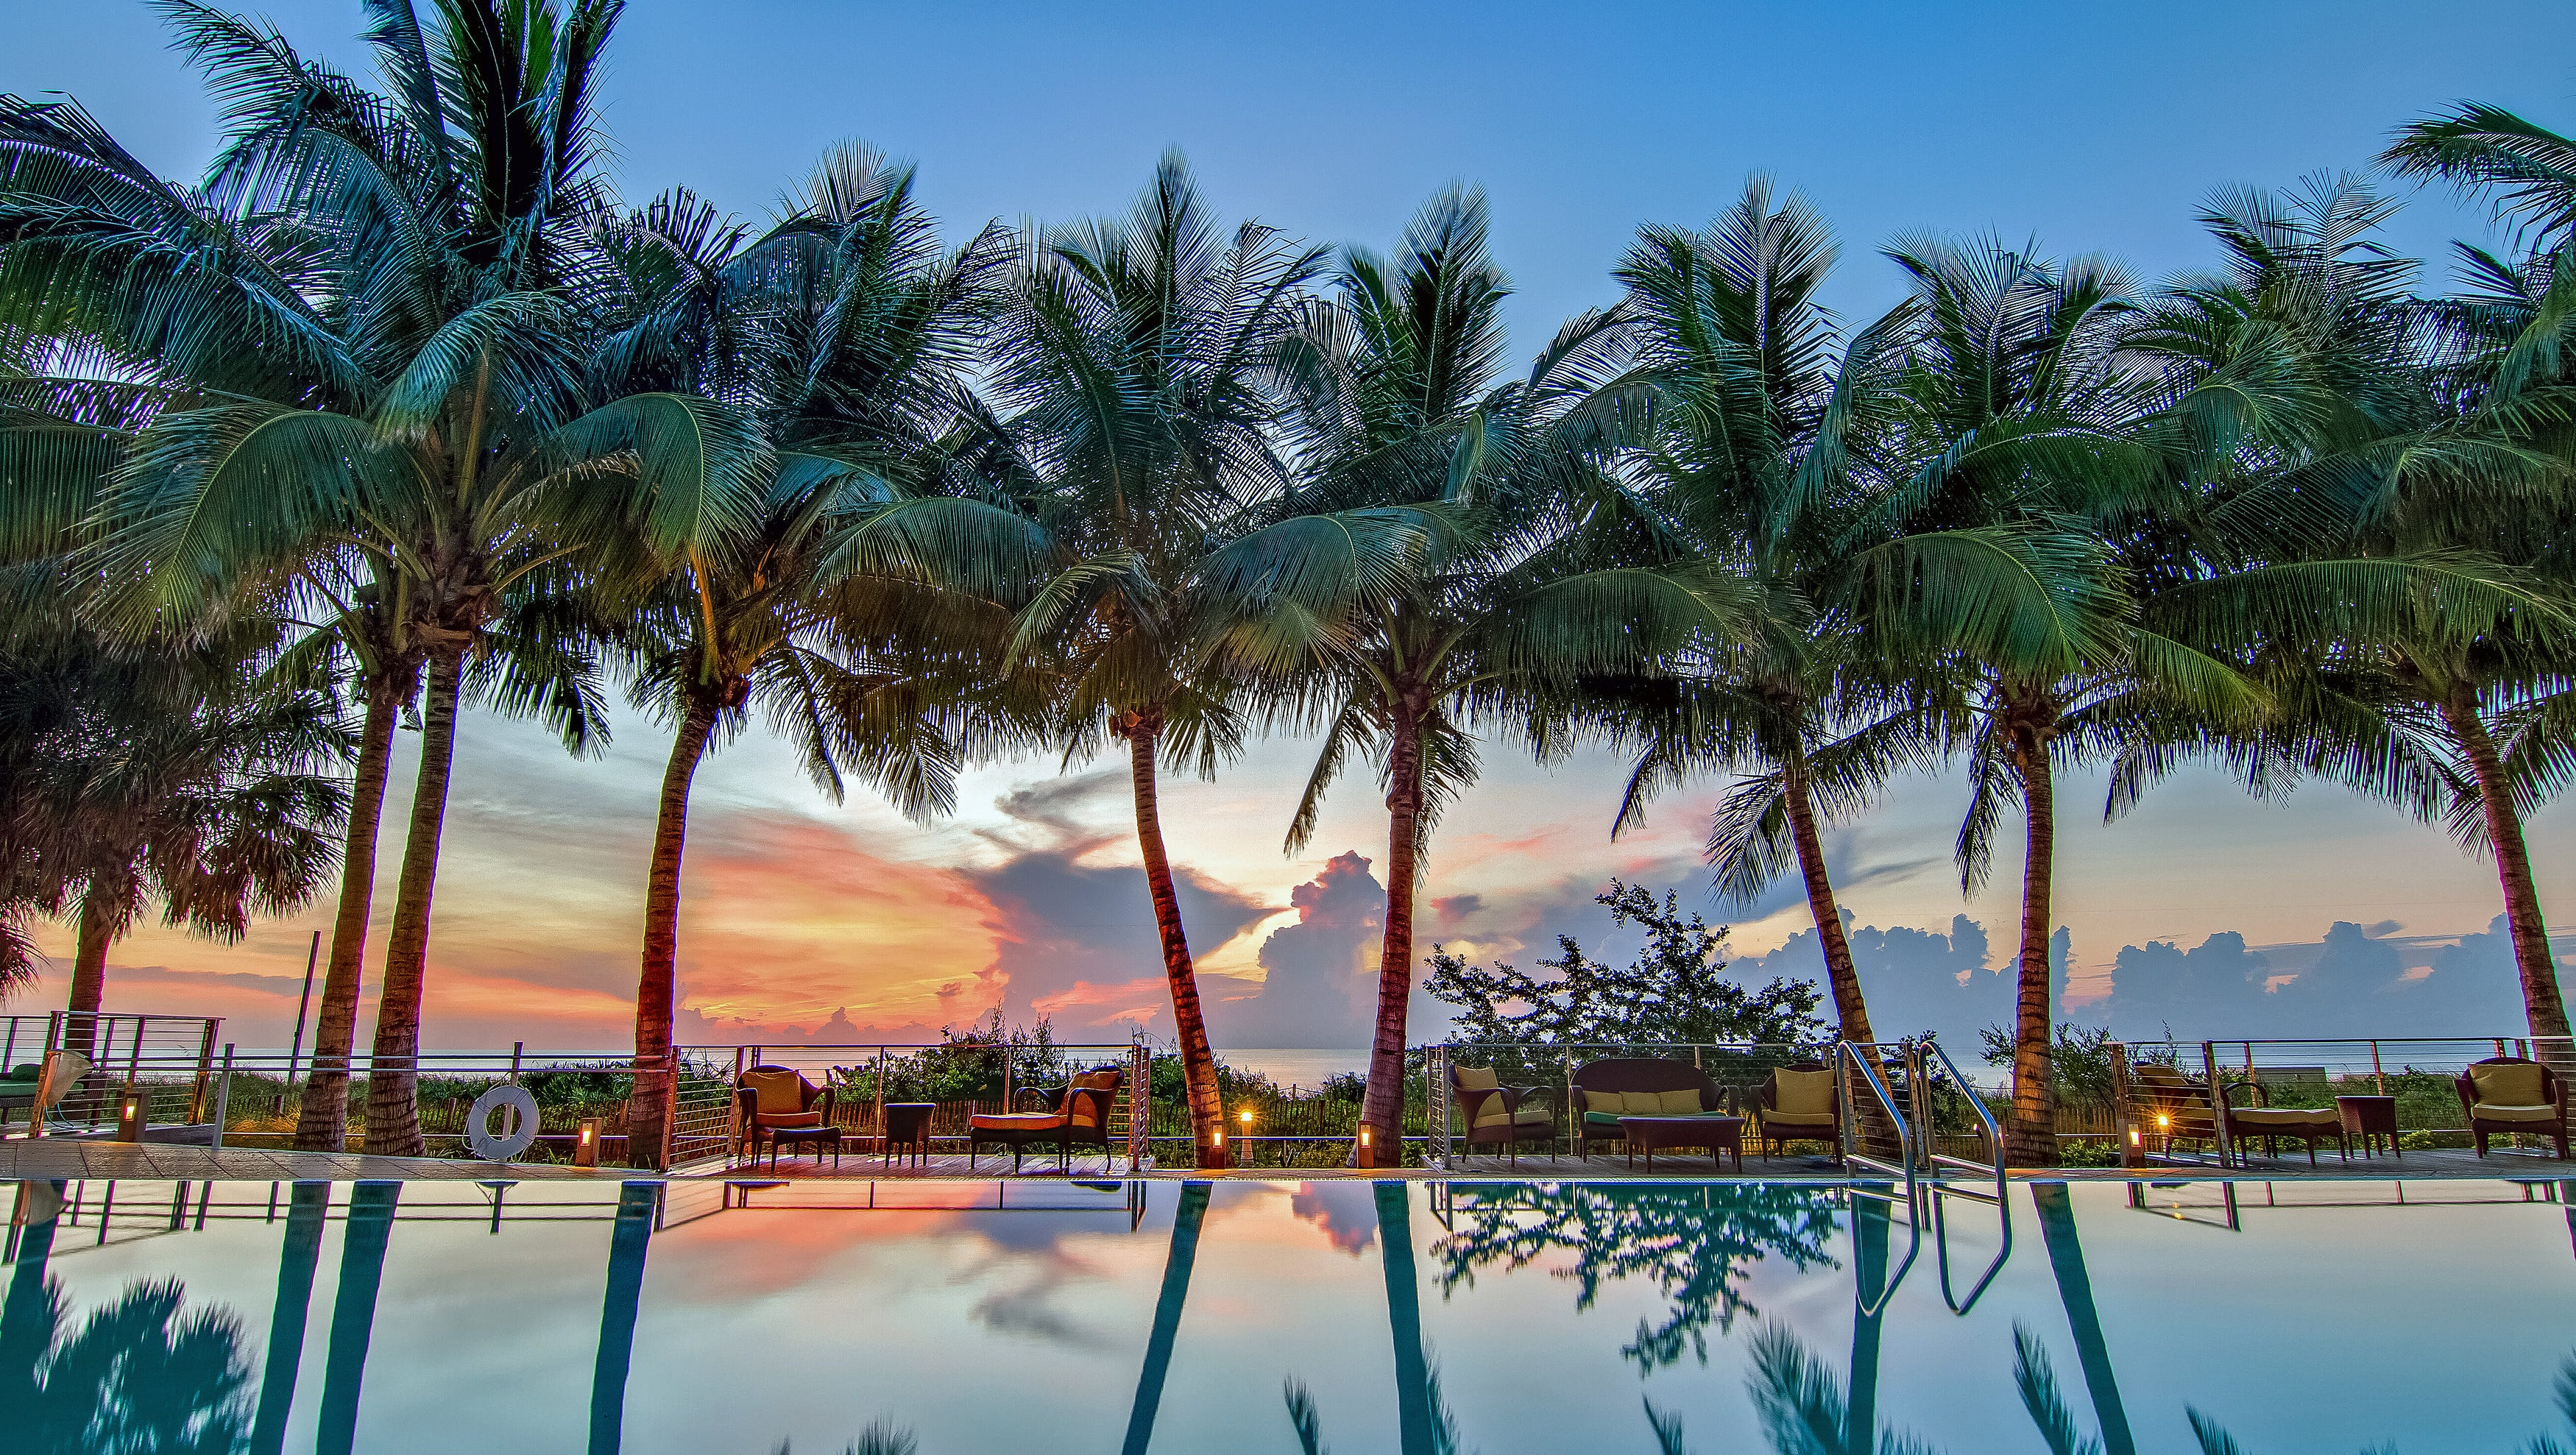 Hotels offer Black Friday, Cyber Monday sales